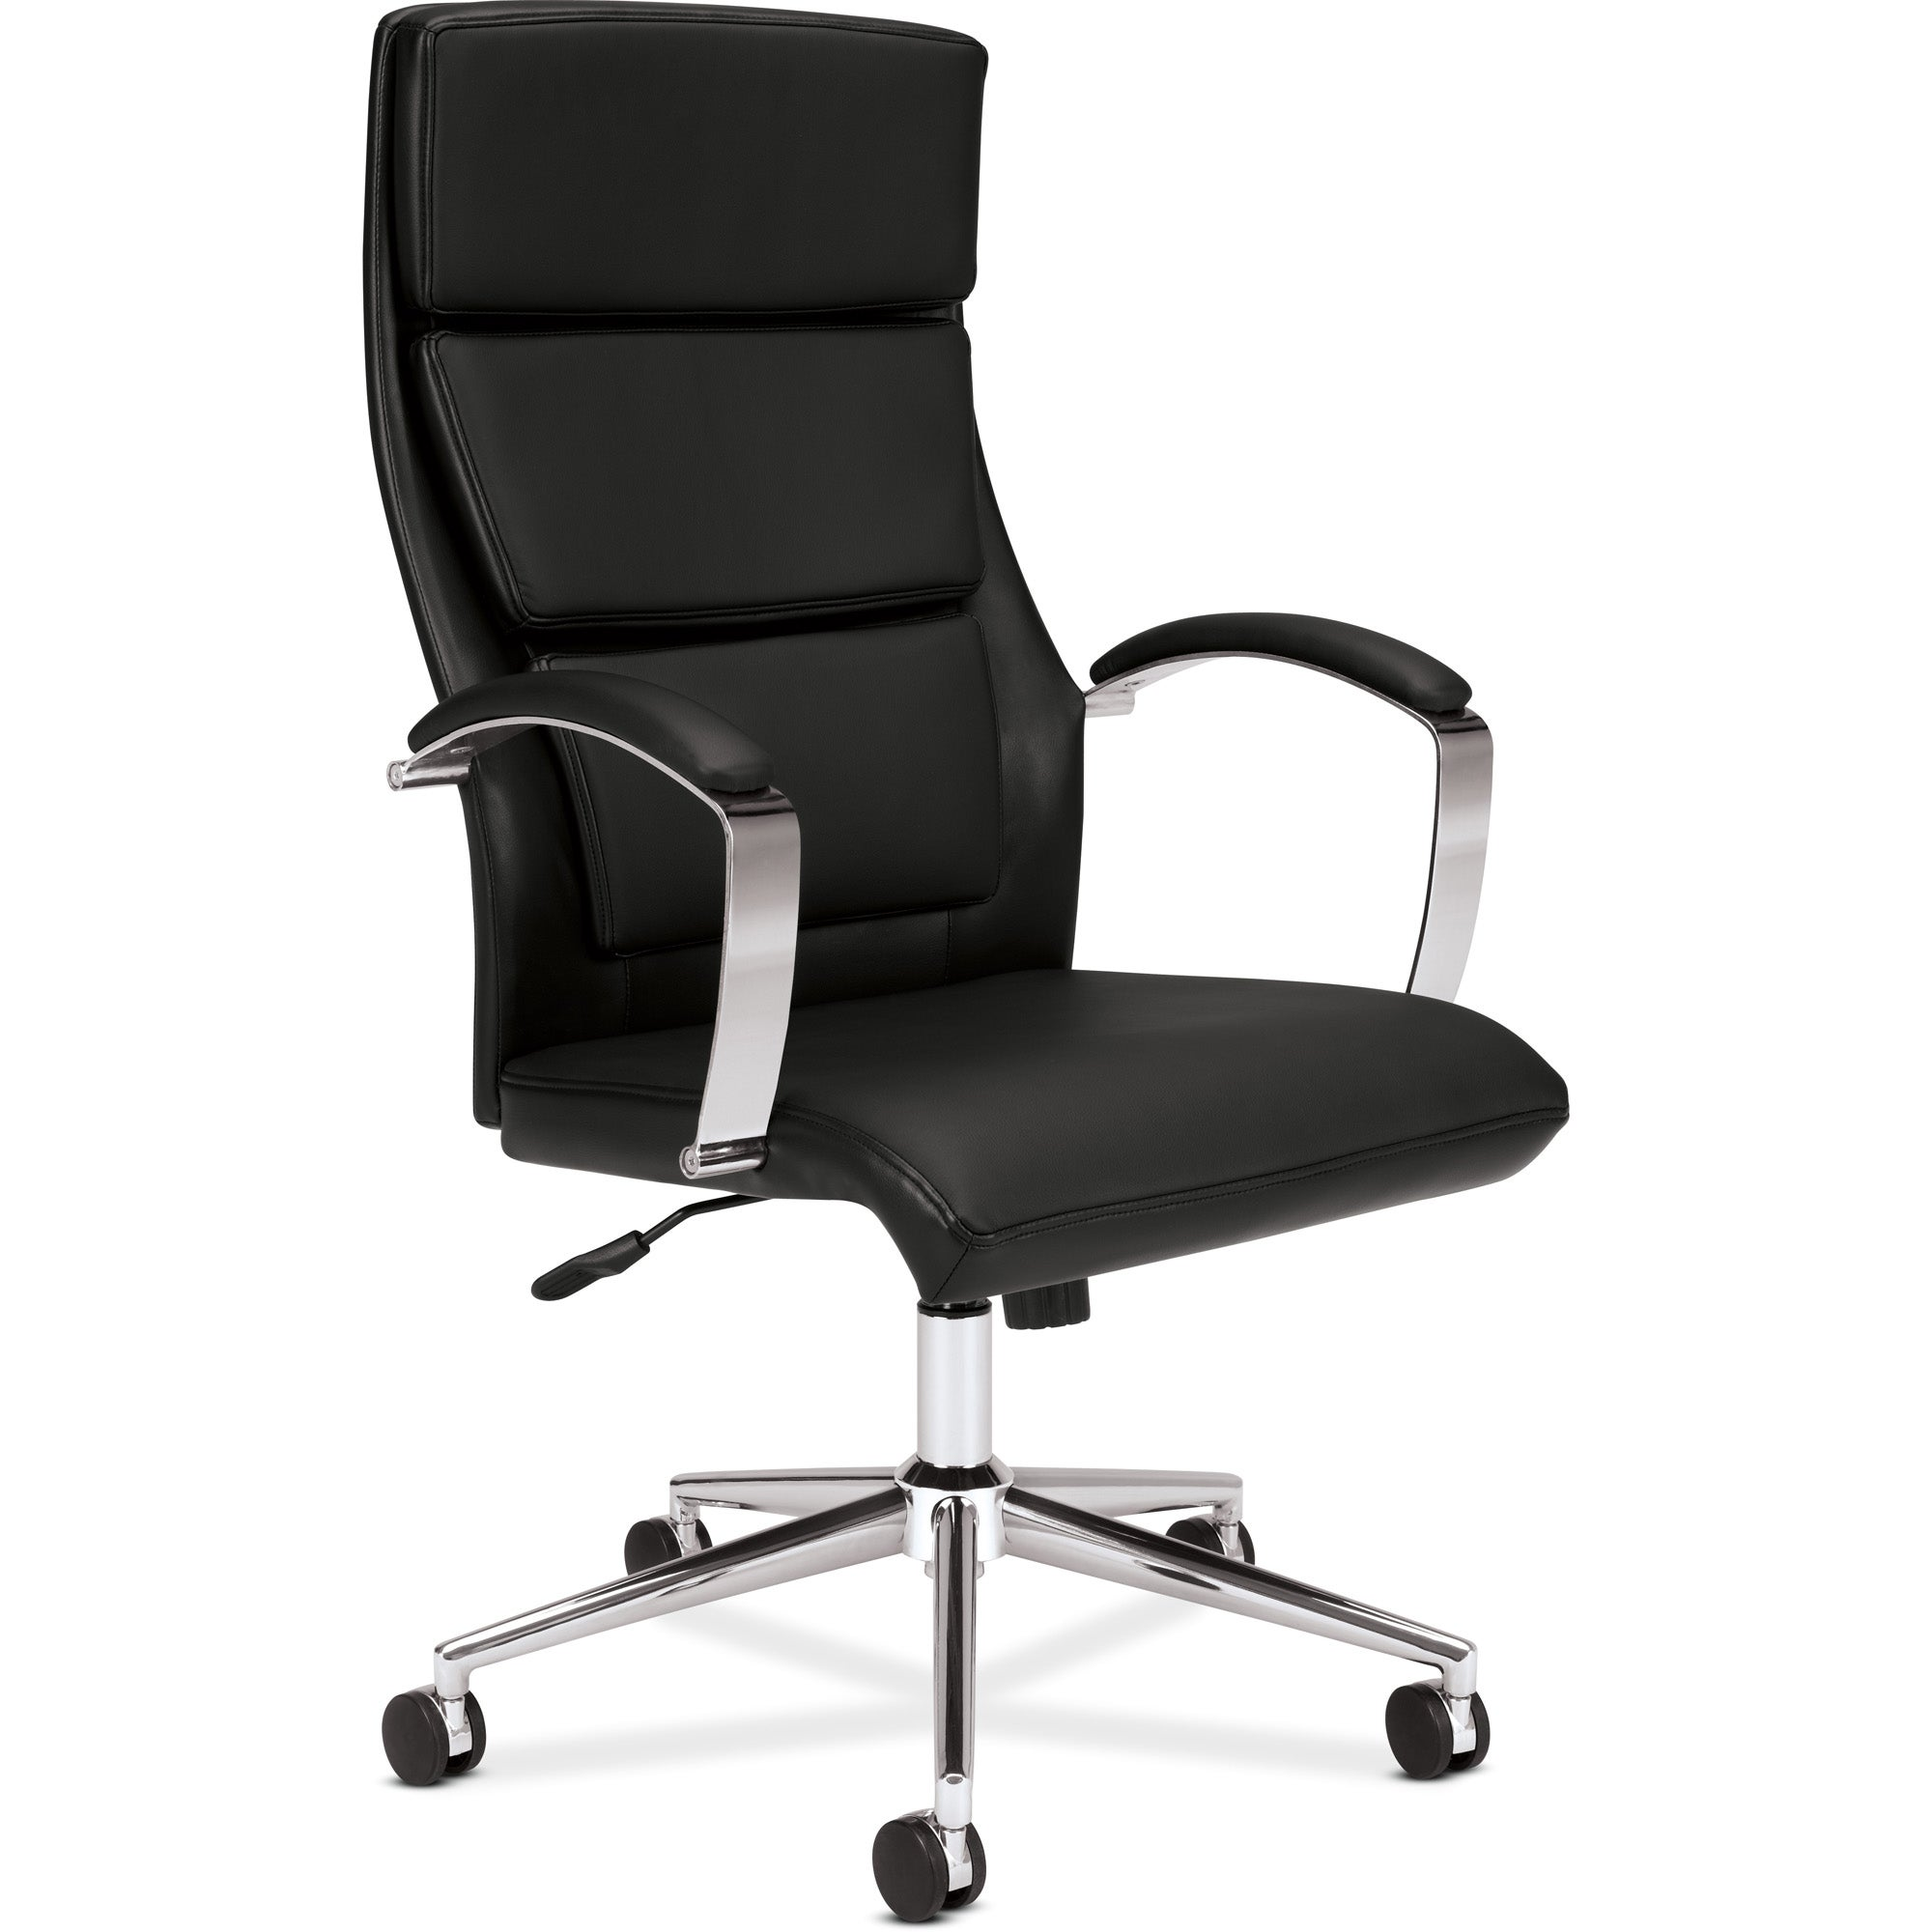 Basyx By HON VL105 Black High Back Executive Task Chair Overstock